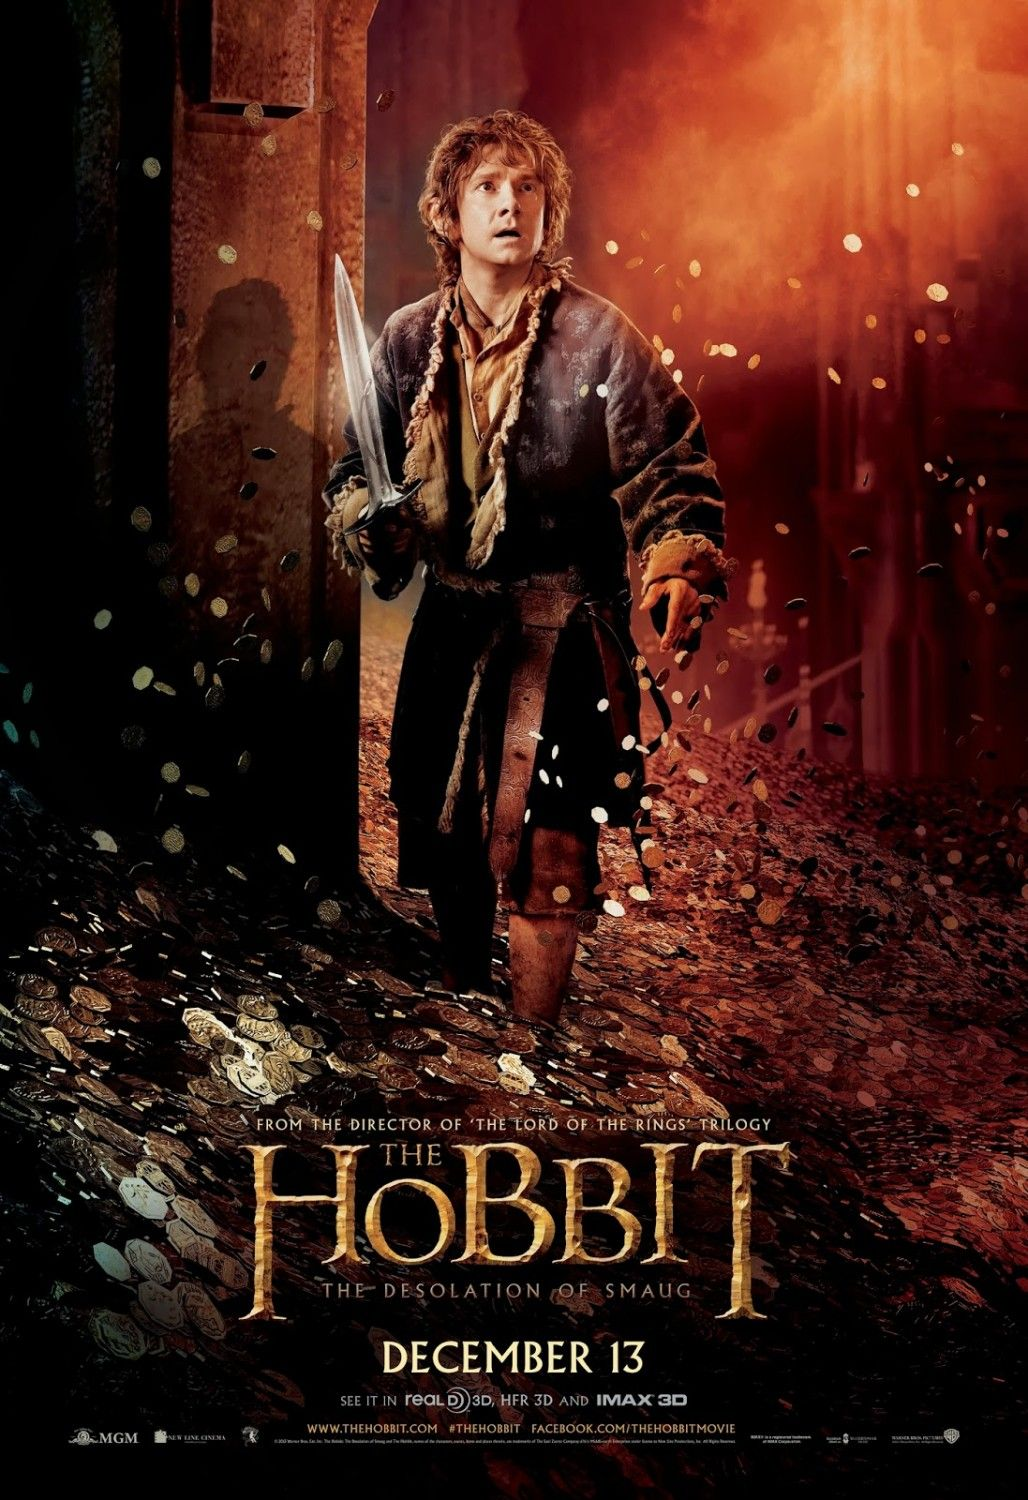 the hobbit: the desolation of smaug movie clips and behind-the